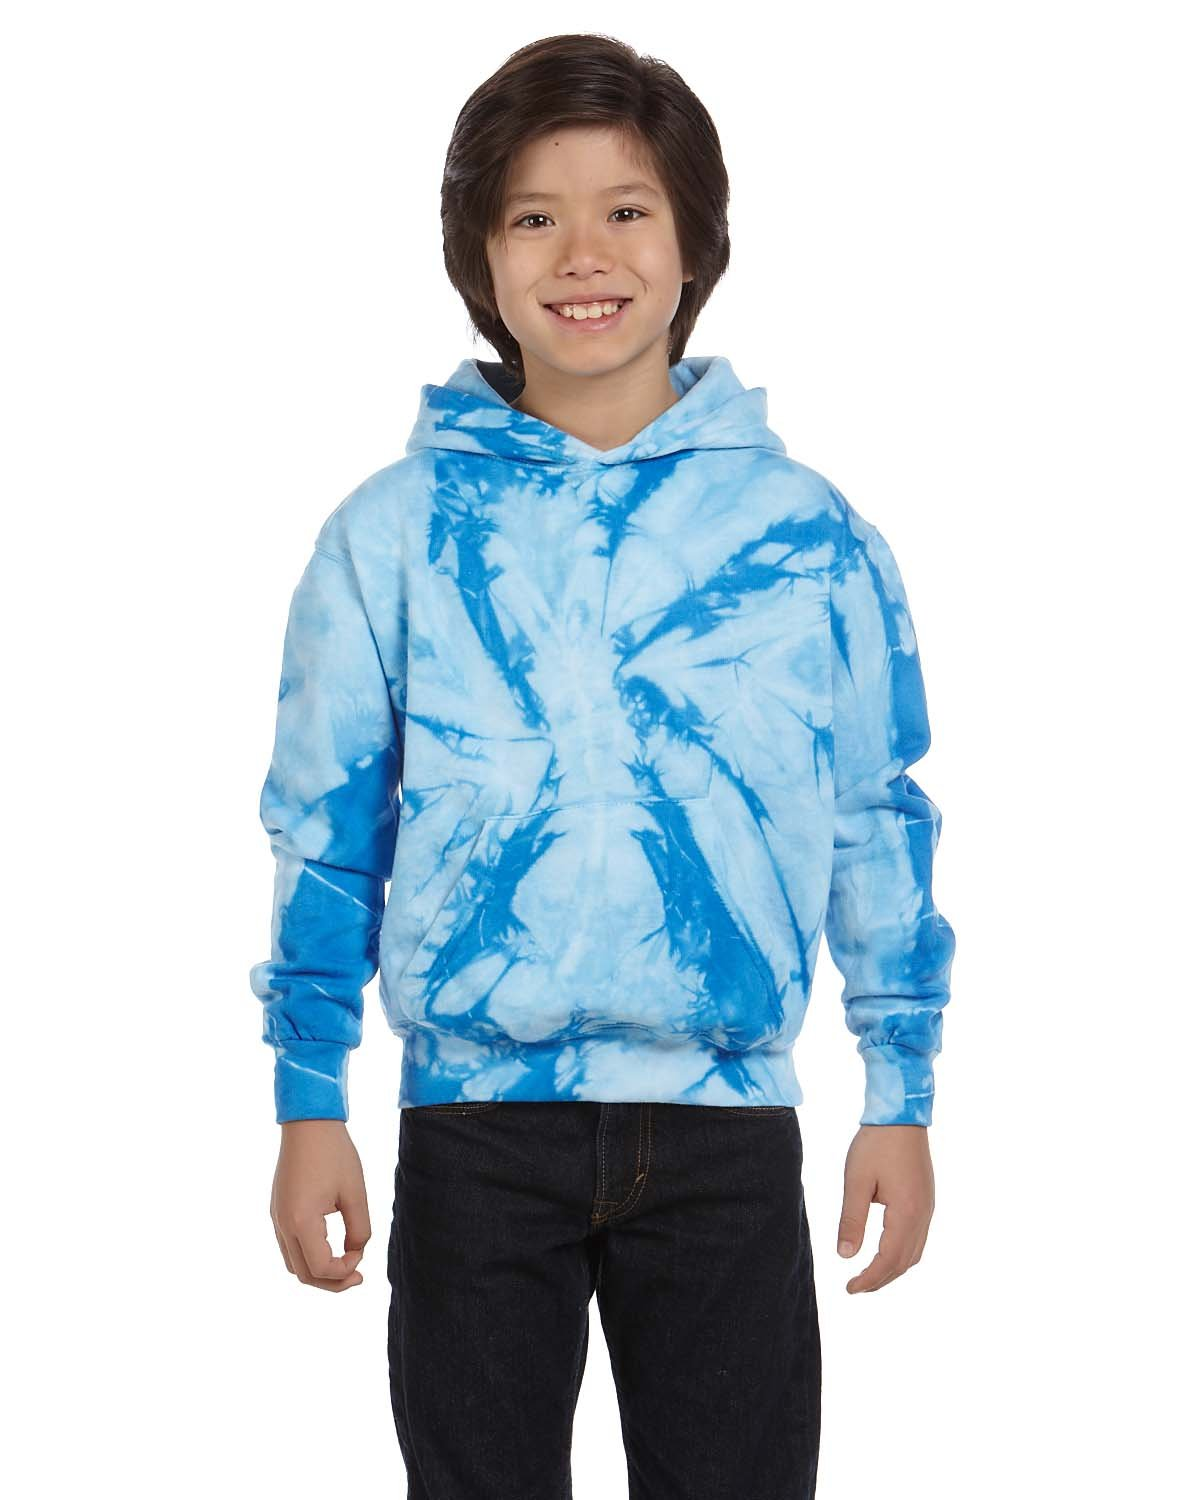 Tie-Dye Youth 8.5 oz. Tie-Dyed Pullover Hooded Sweatshirt SPIDER BABY BLUE